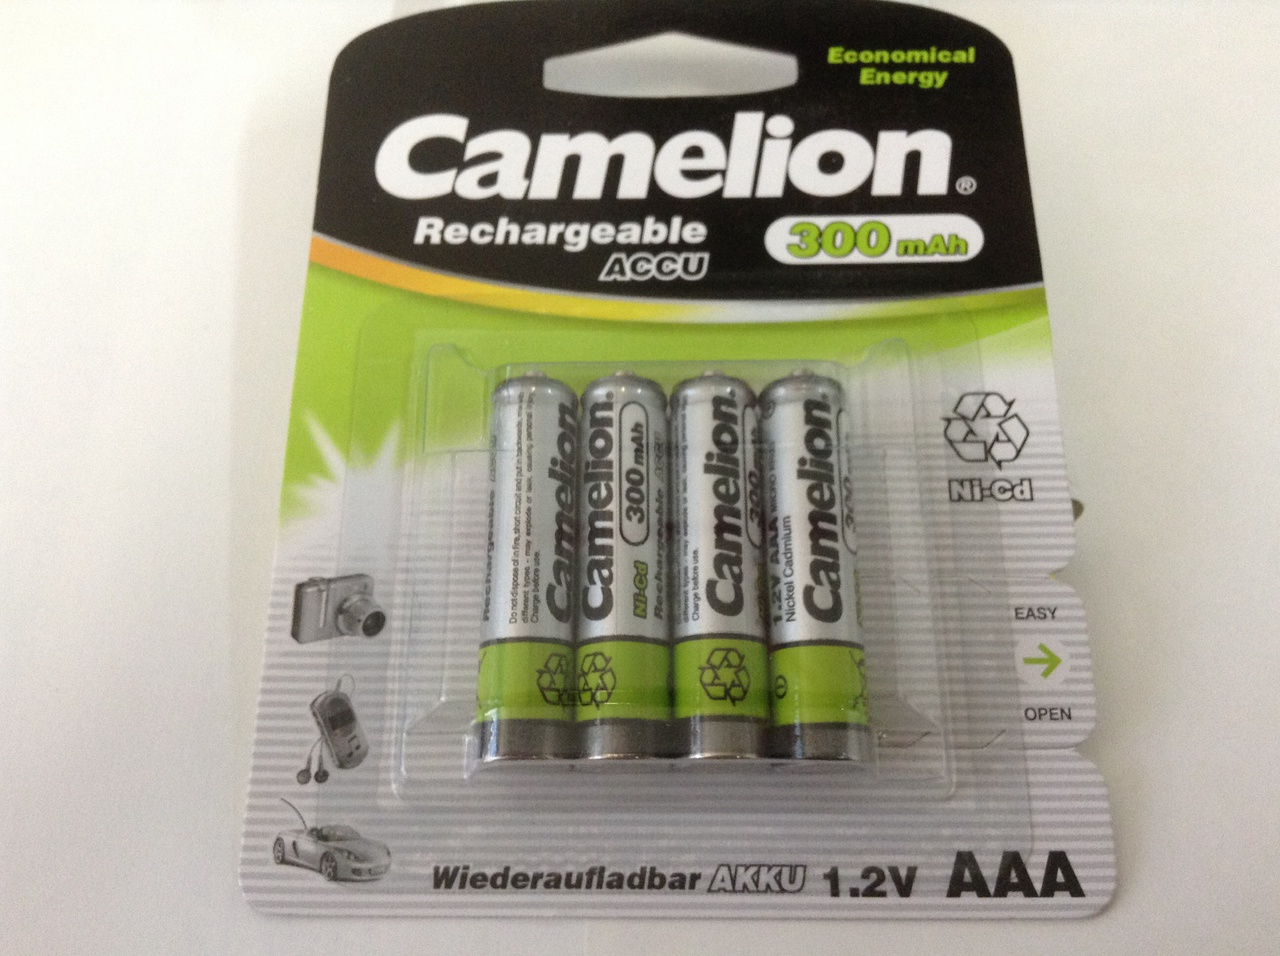 Camelion Economical Energy AAA Rechargeable NiCD Batteries 300mAh 4 Pack Retail + FREE SHIPPING!